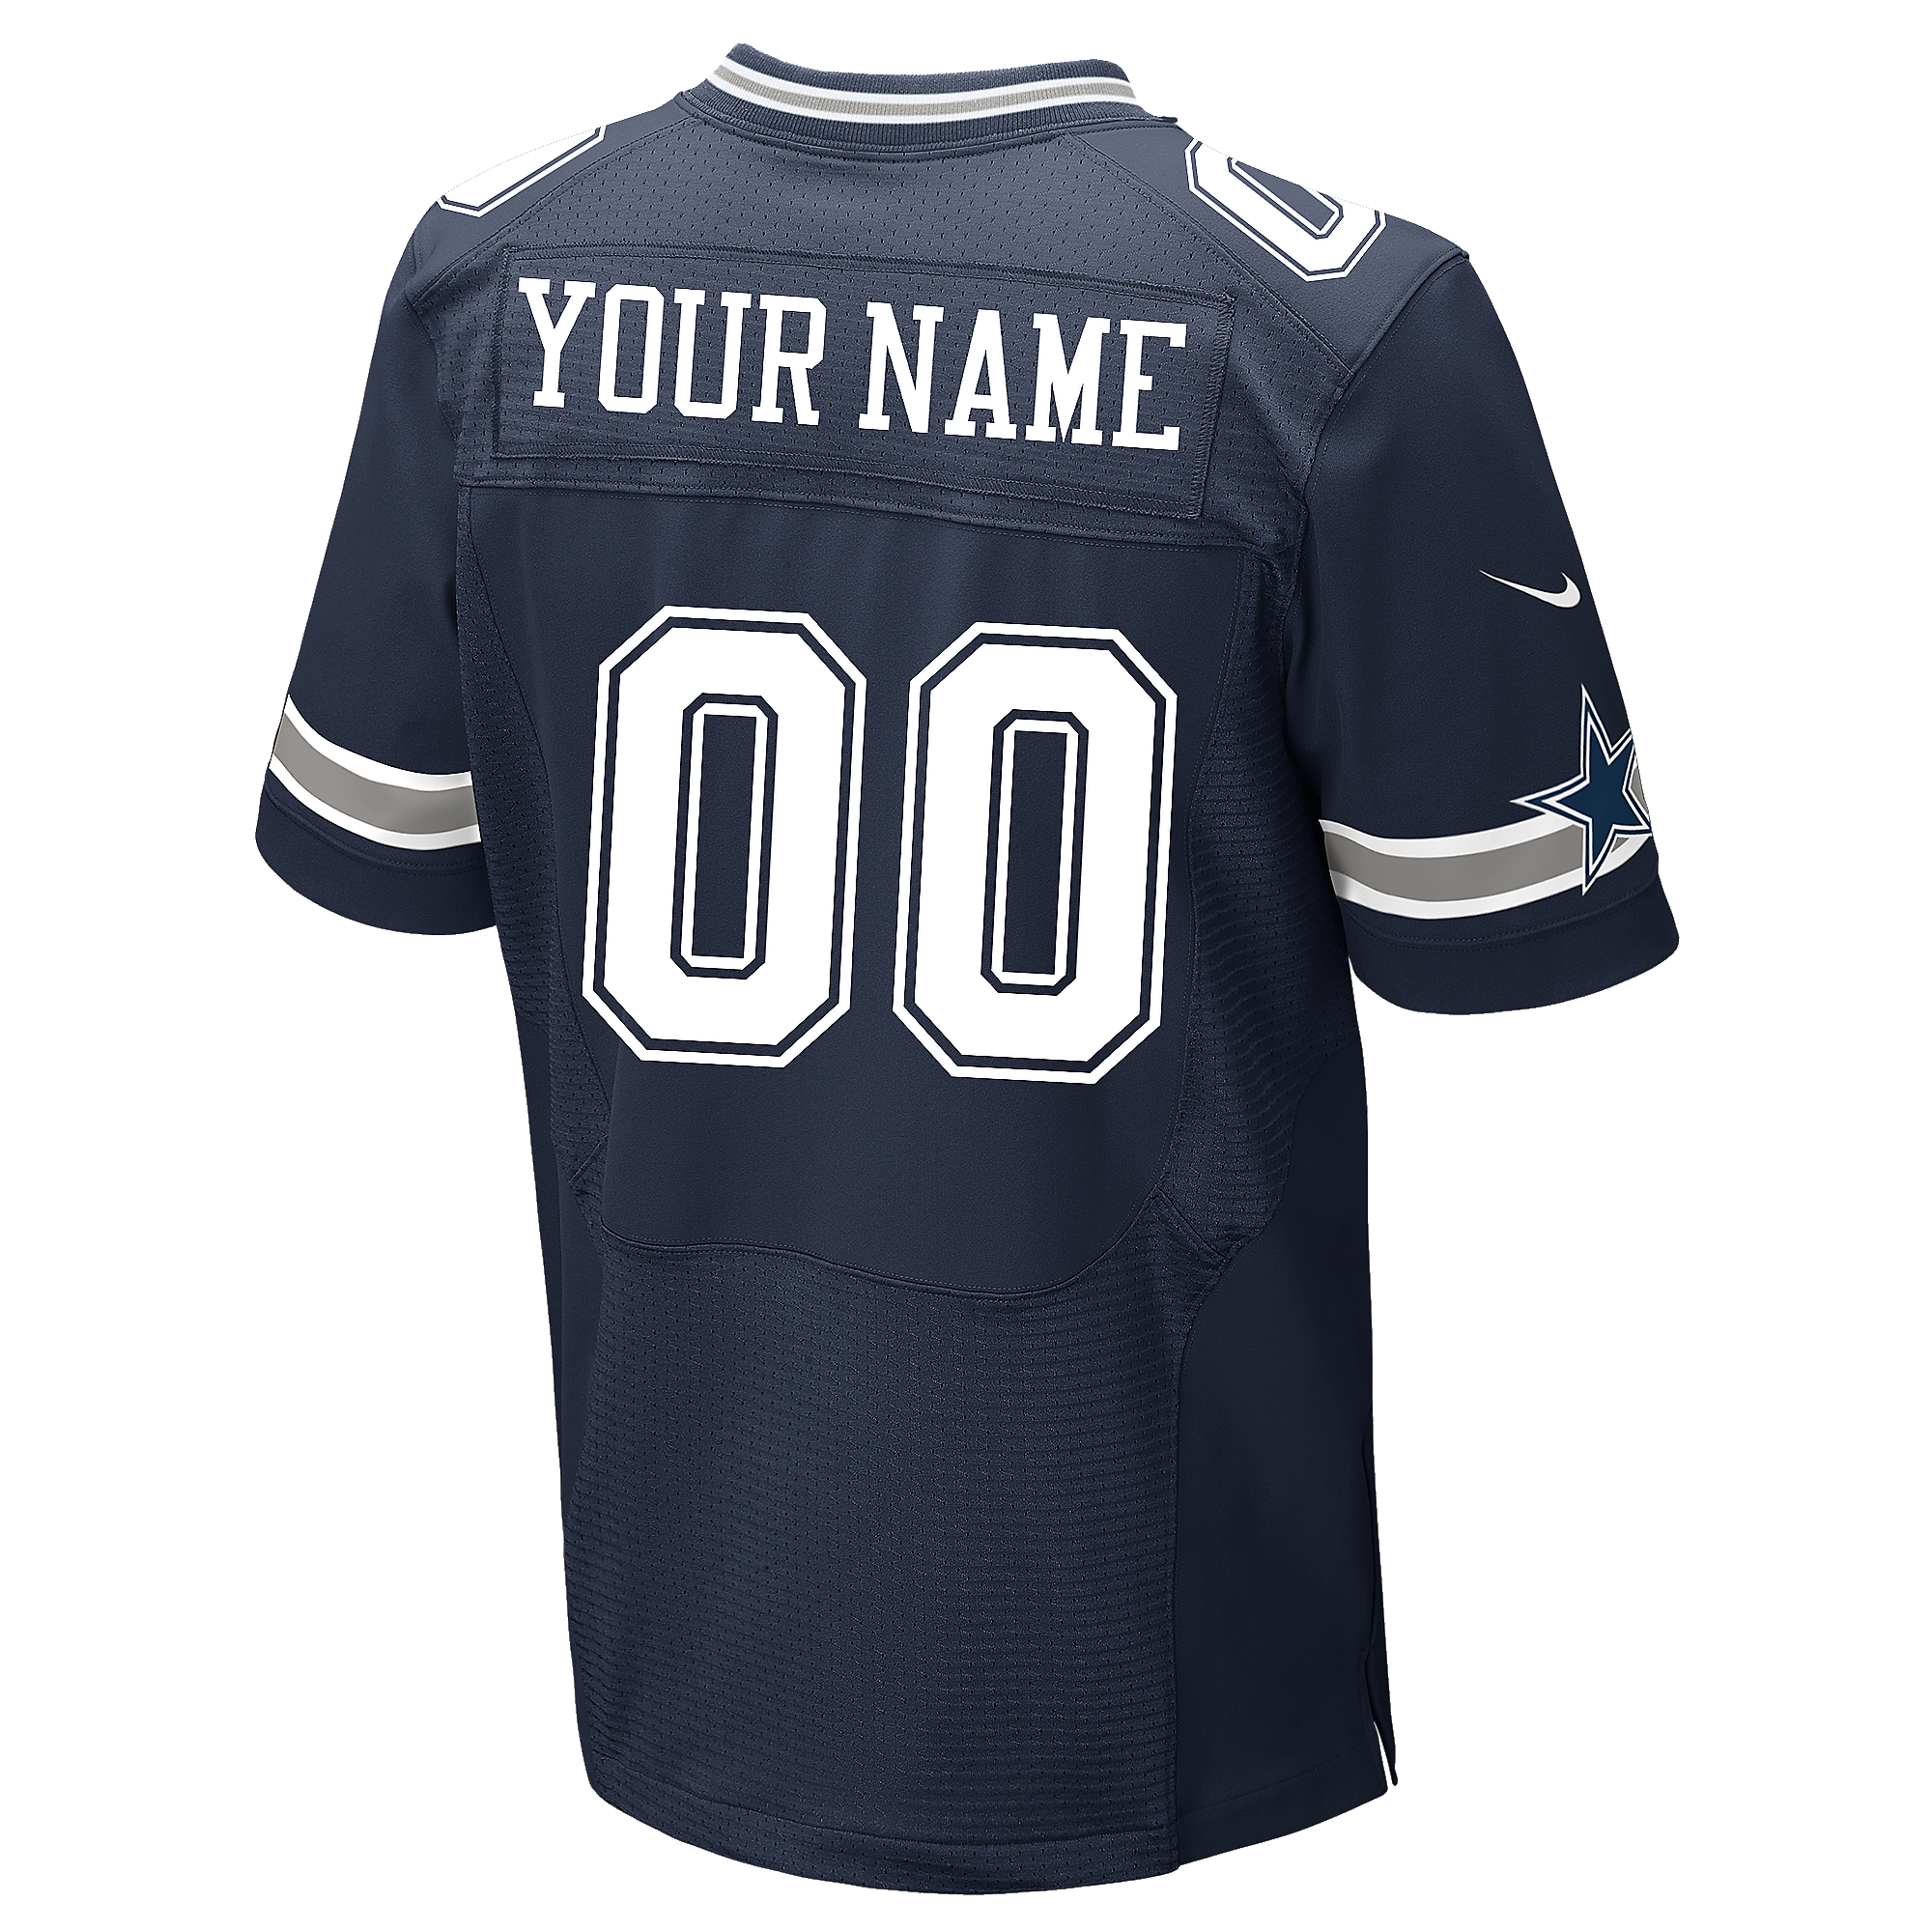 05bcbc205f8 Dallas Cowboys Custom Nike Navy Elite Authentic Jersey | Dallas ...